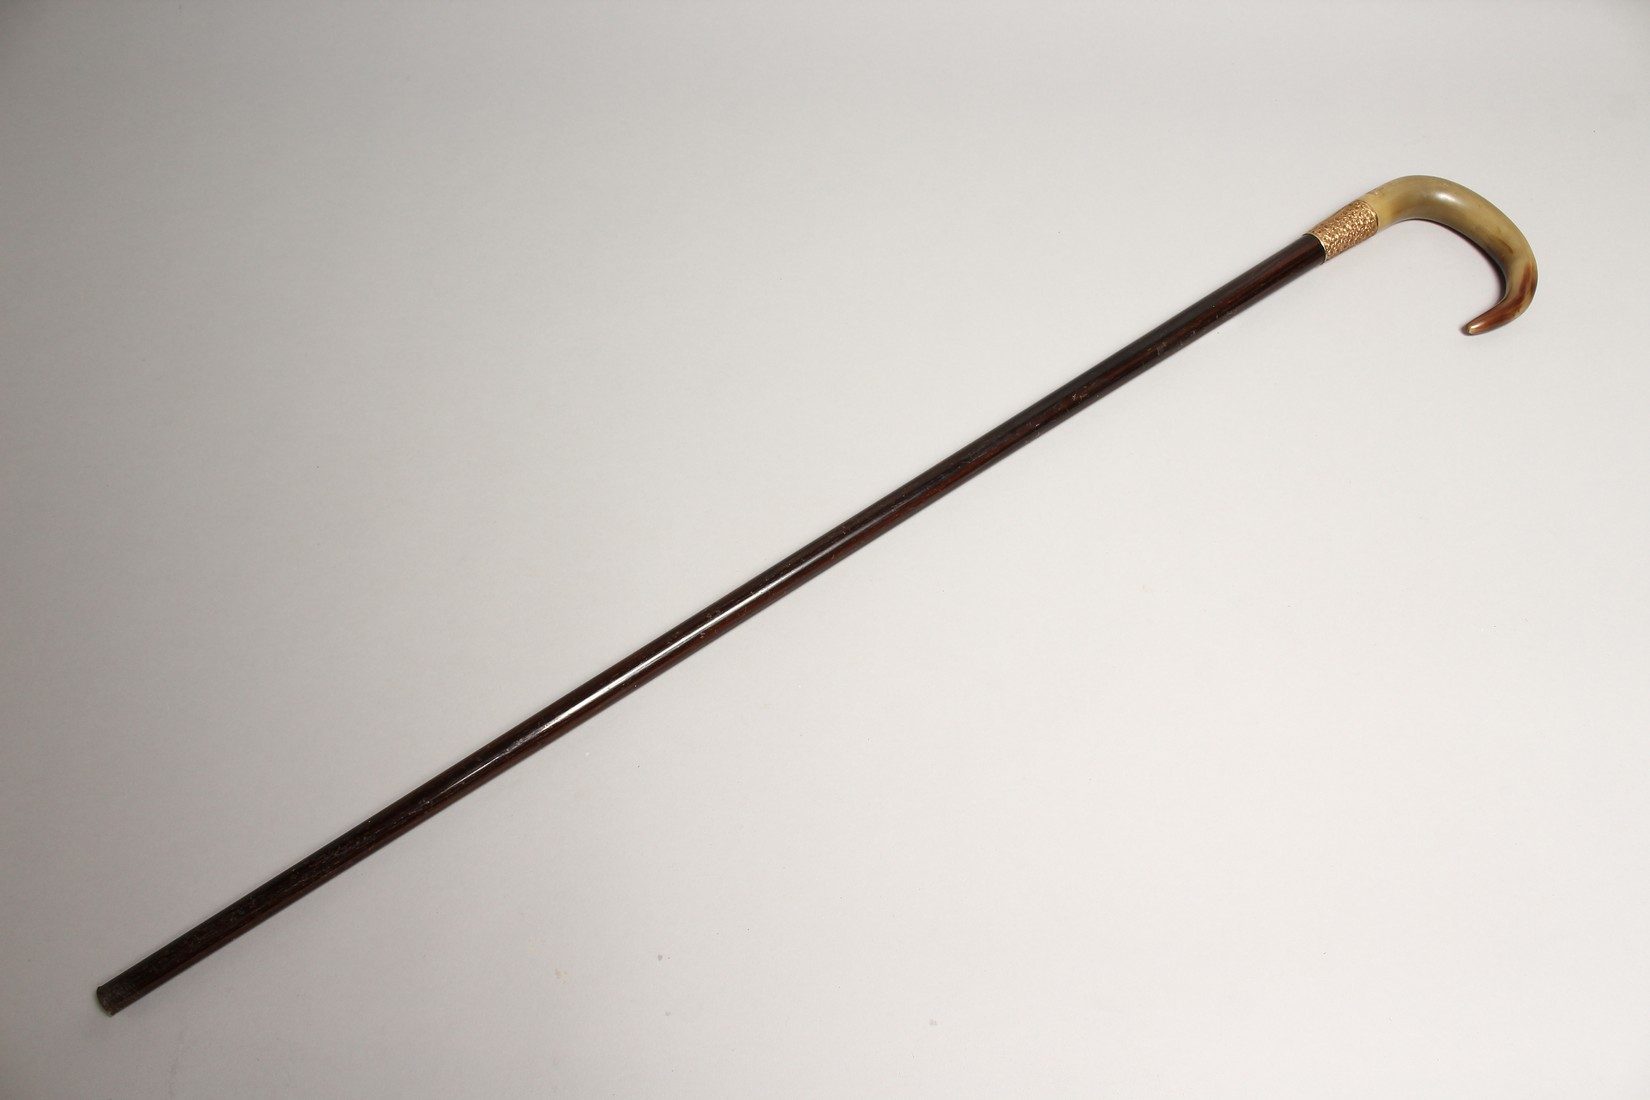 A VERY GOOD 19TH CENTURY RHINO HANDLE WALKING STICK with gilt band 2ft 10ins long - Image 11 of 11